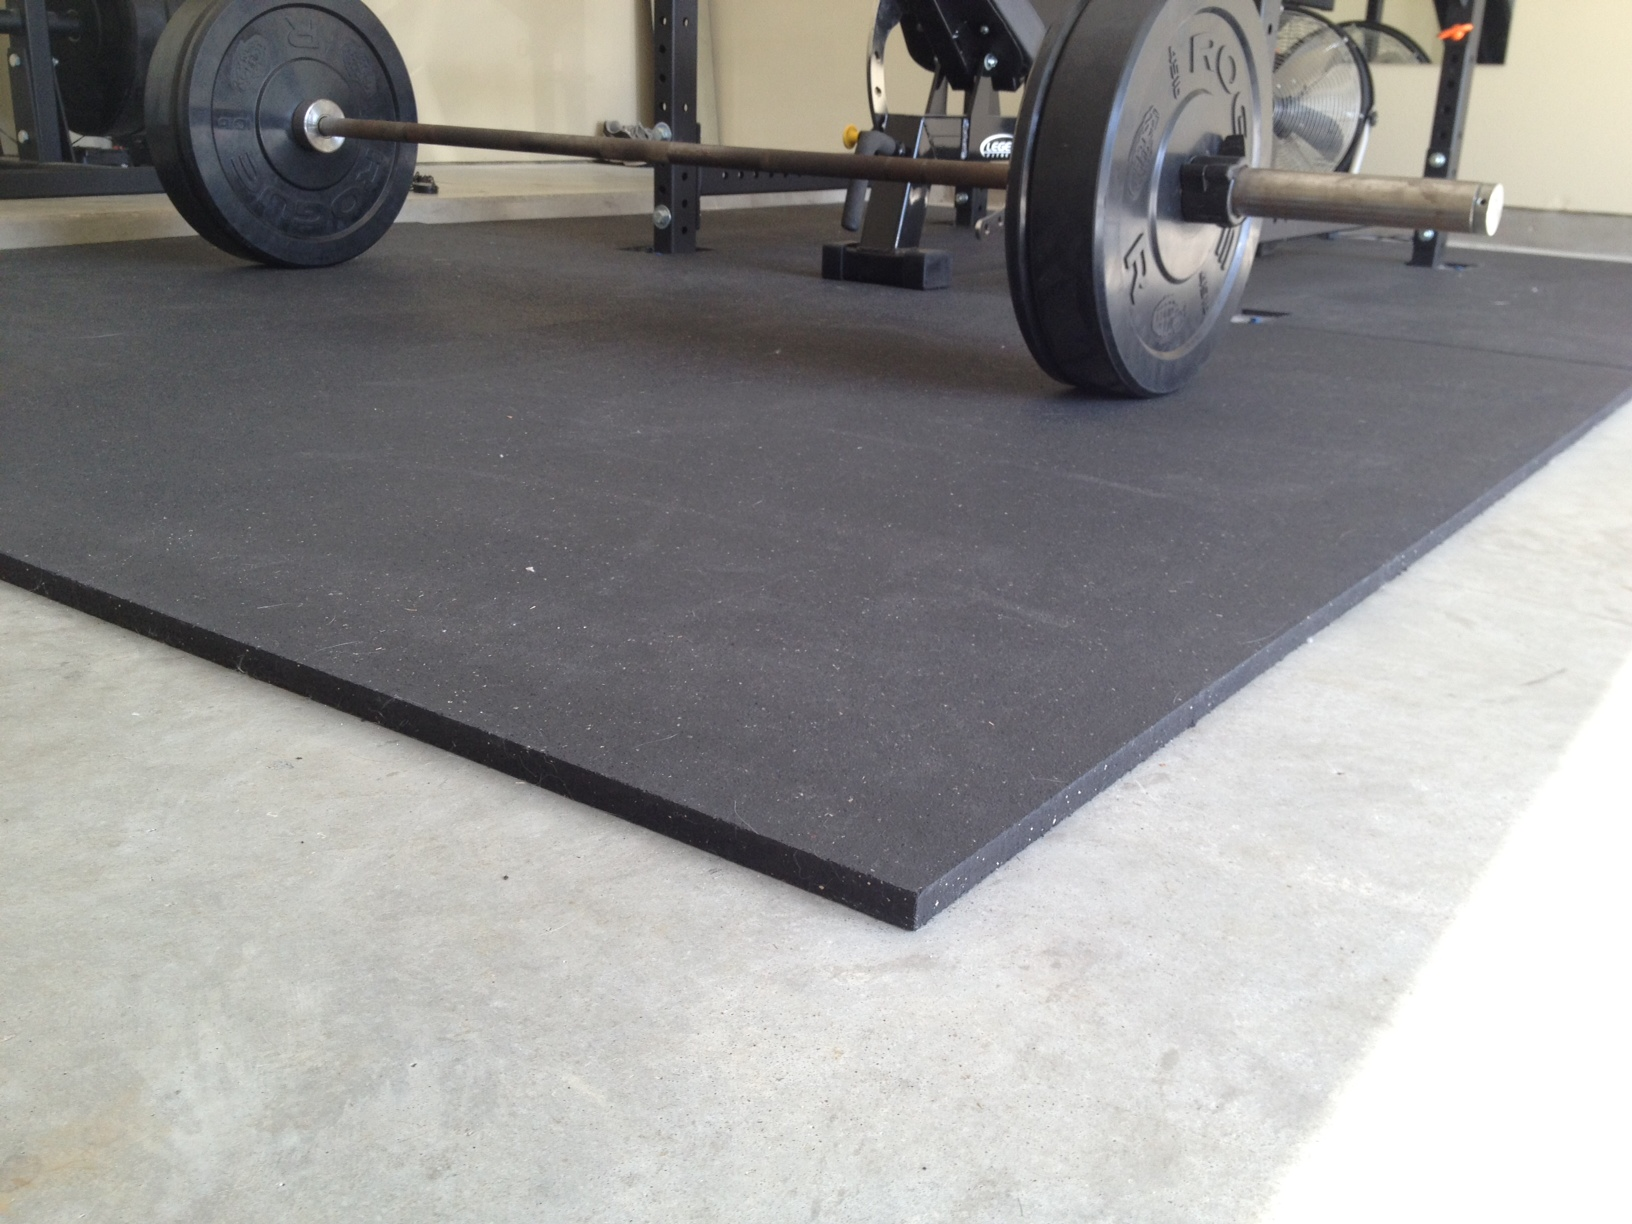 compact garage gym ideas - Garage Gyms